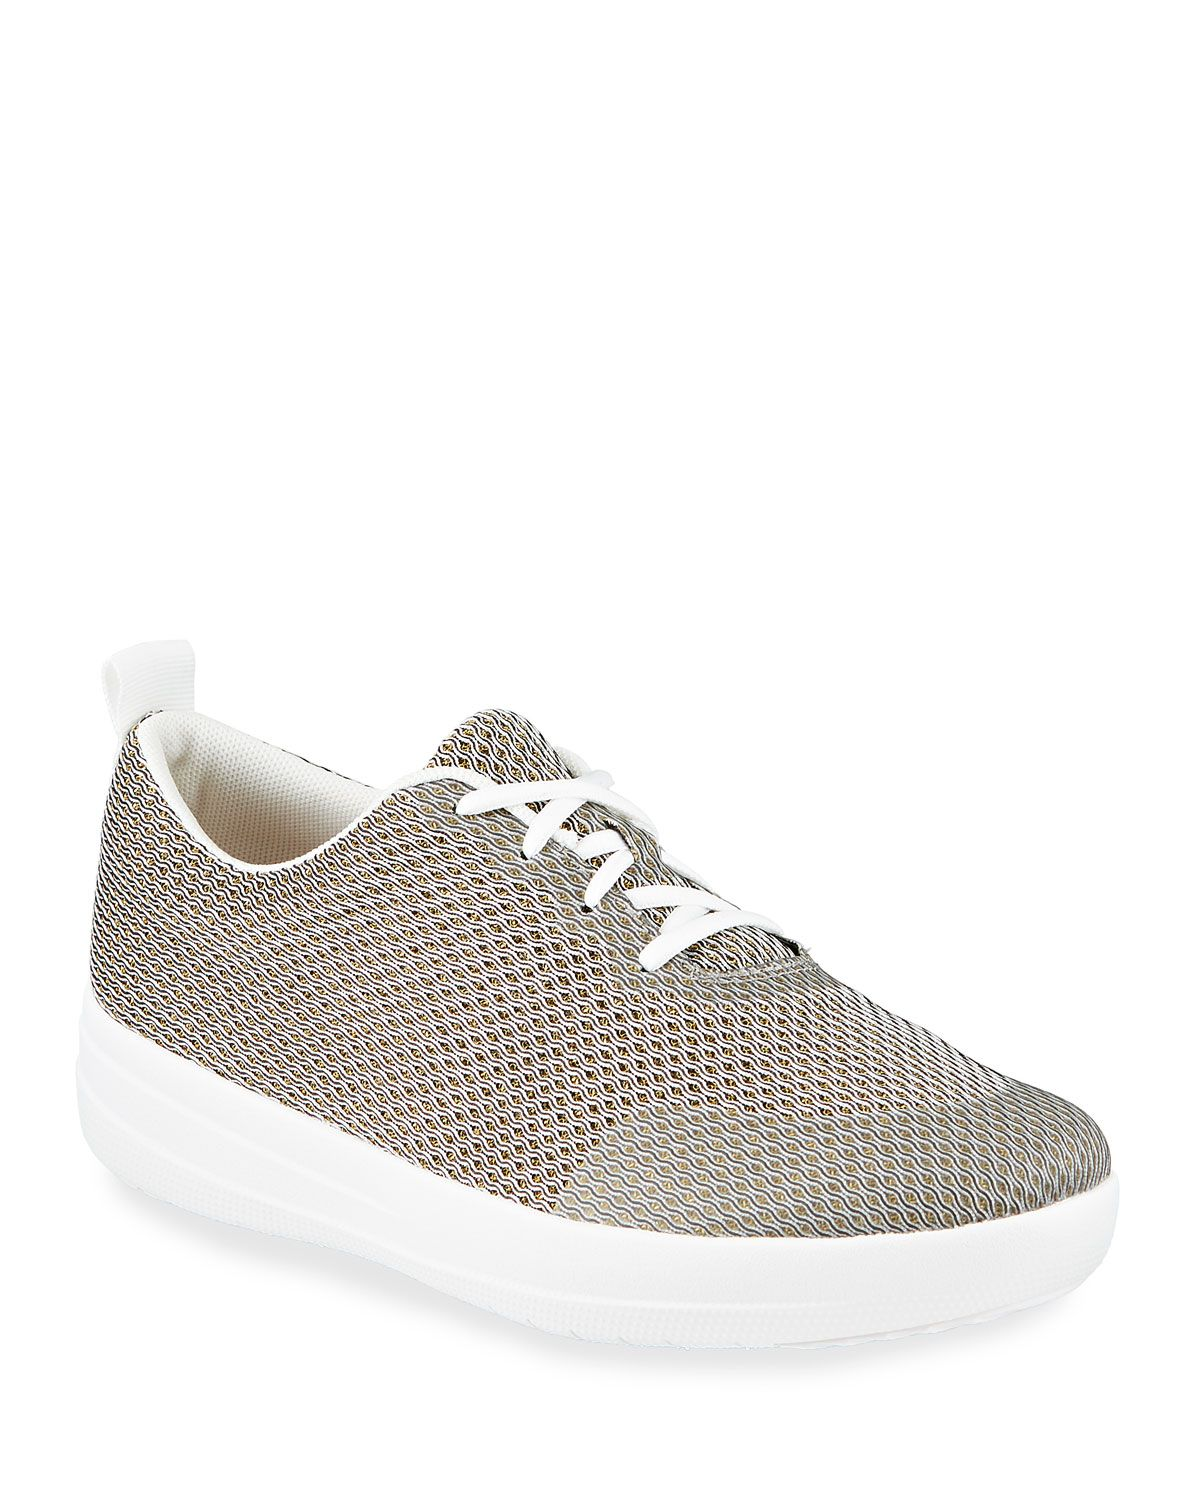 FITFLOP F-SPORTY KNIT MESH SNEAKERS